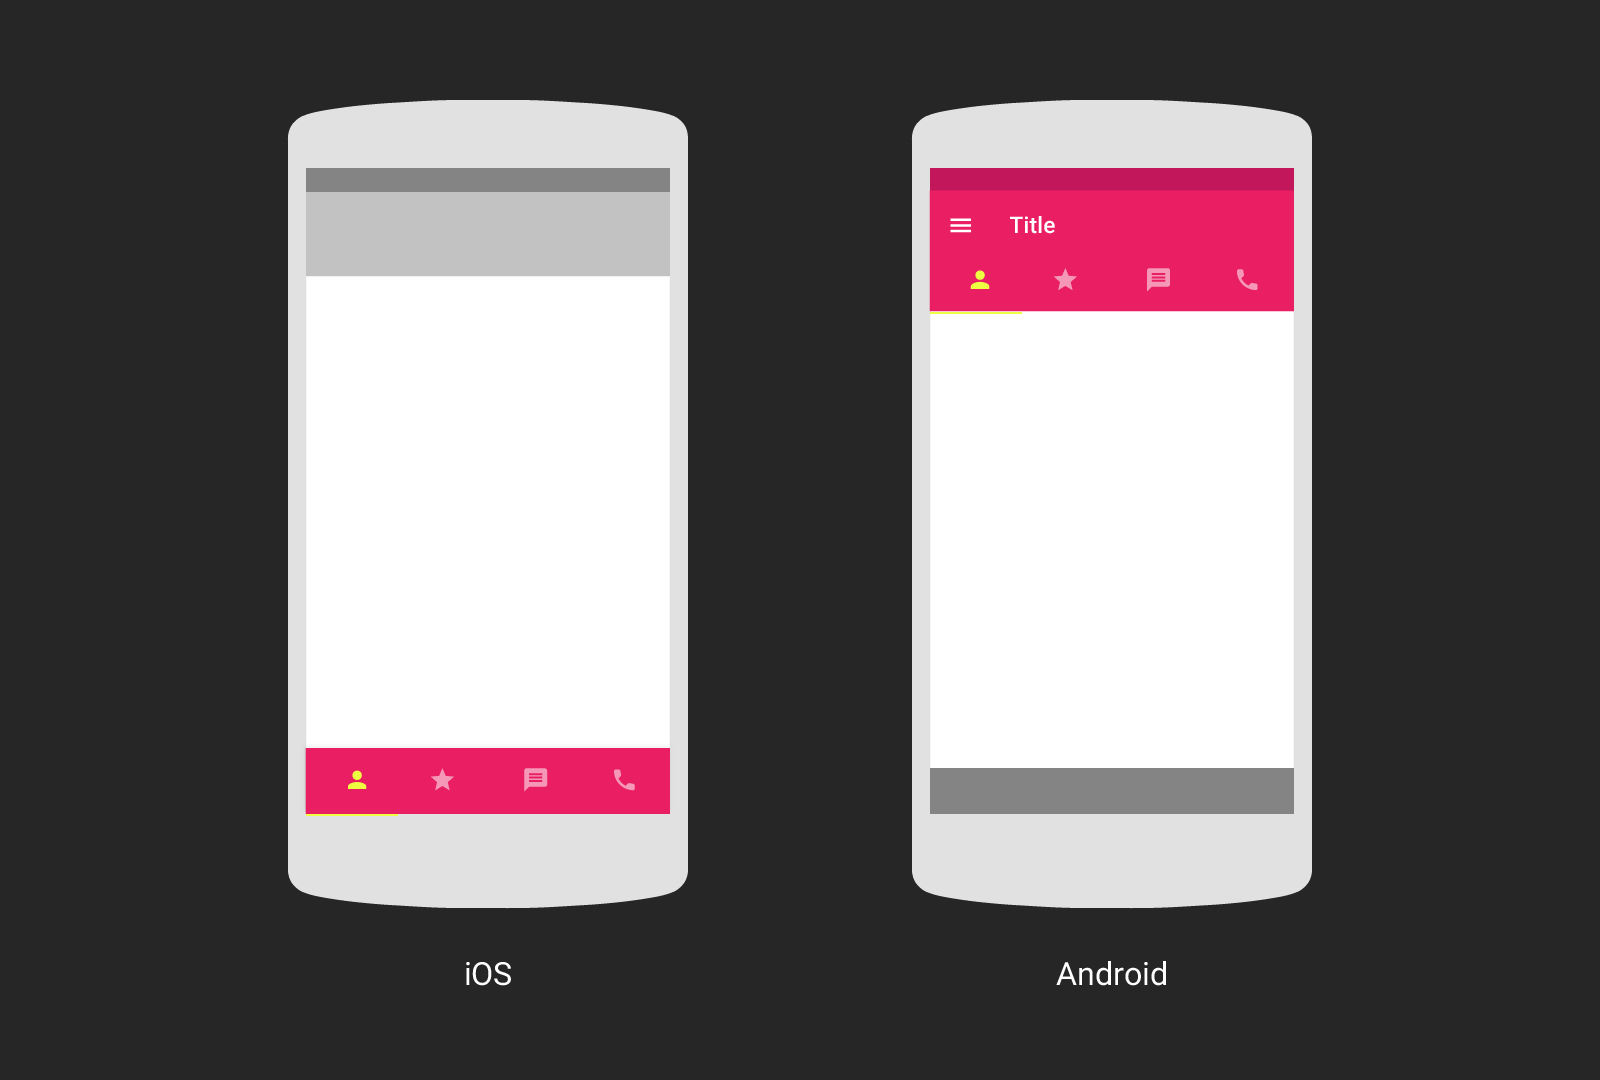 design_from_ios_to_android_inline_0006.png